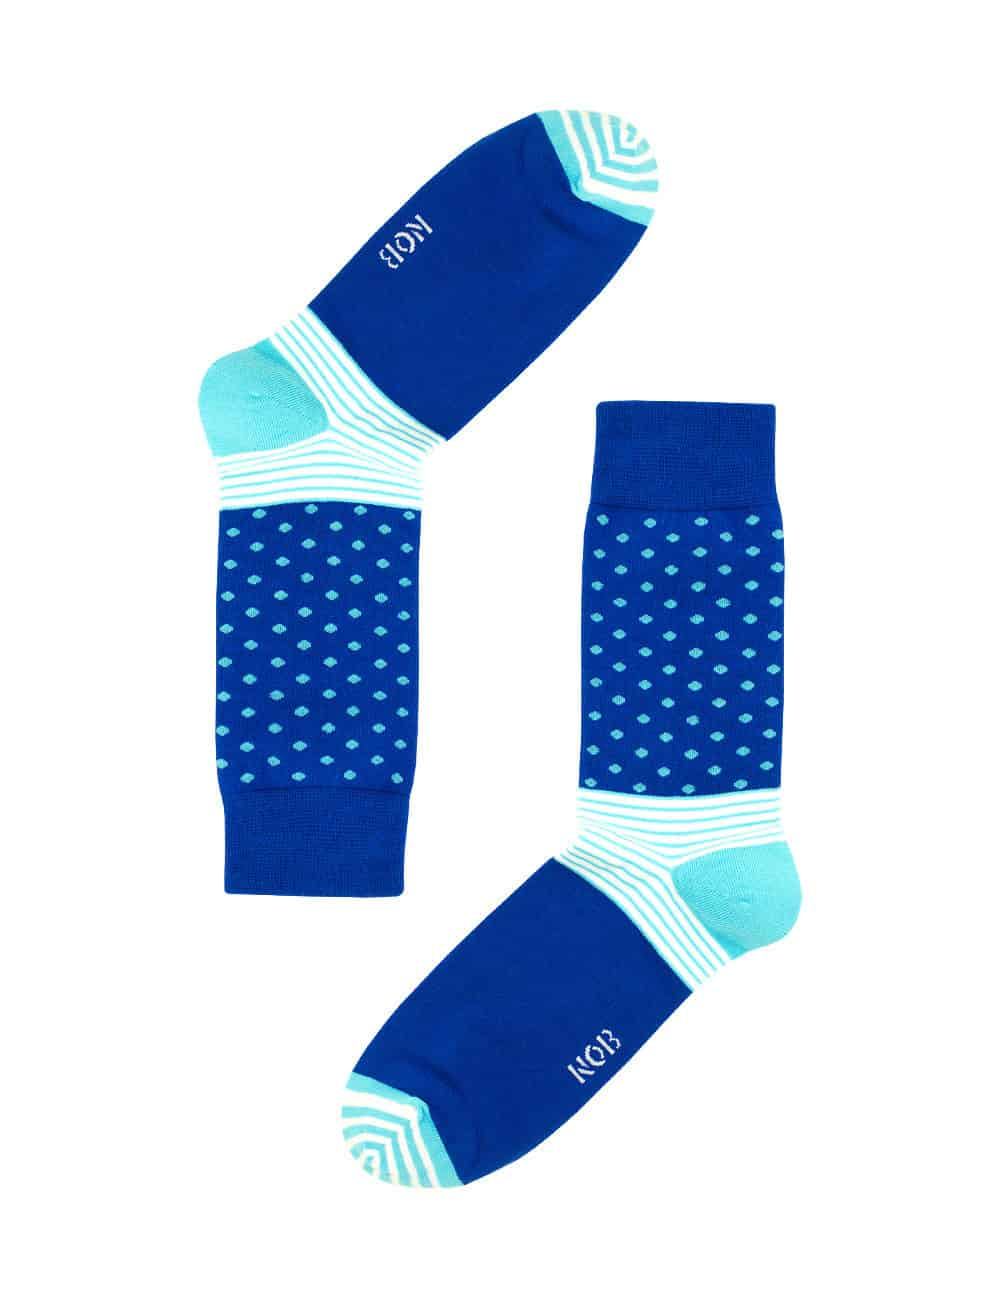 BLUE WITH SKY BLUE POLKA DOTS CREW SOCKS SOC2A.NOB1